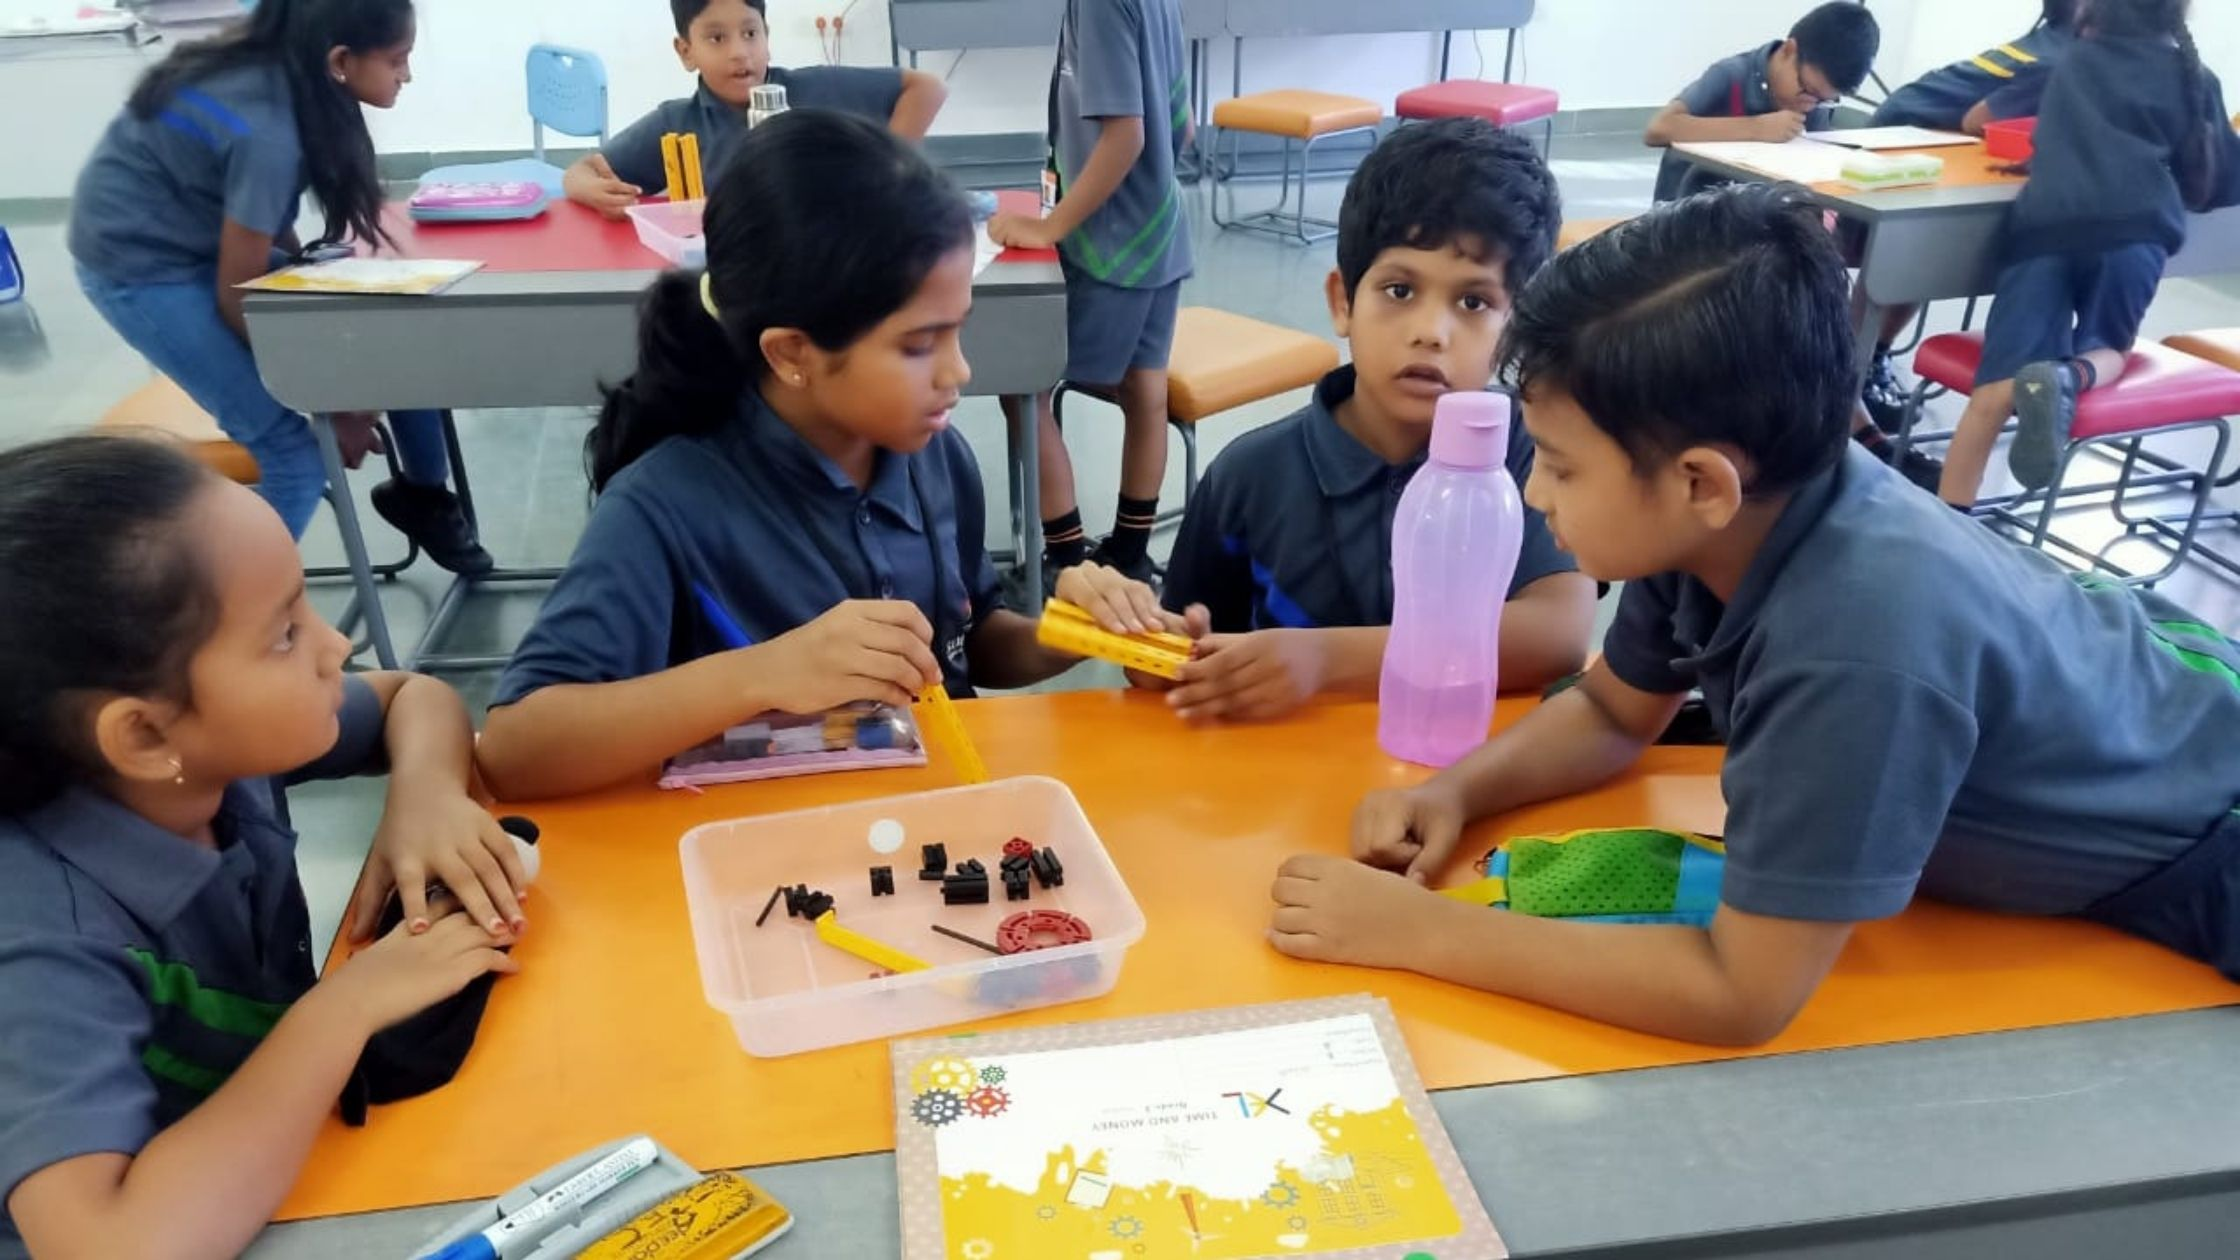 Students develop literacies, competencies, and other skills through STEAM education